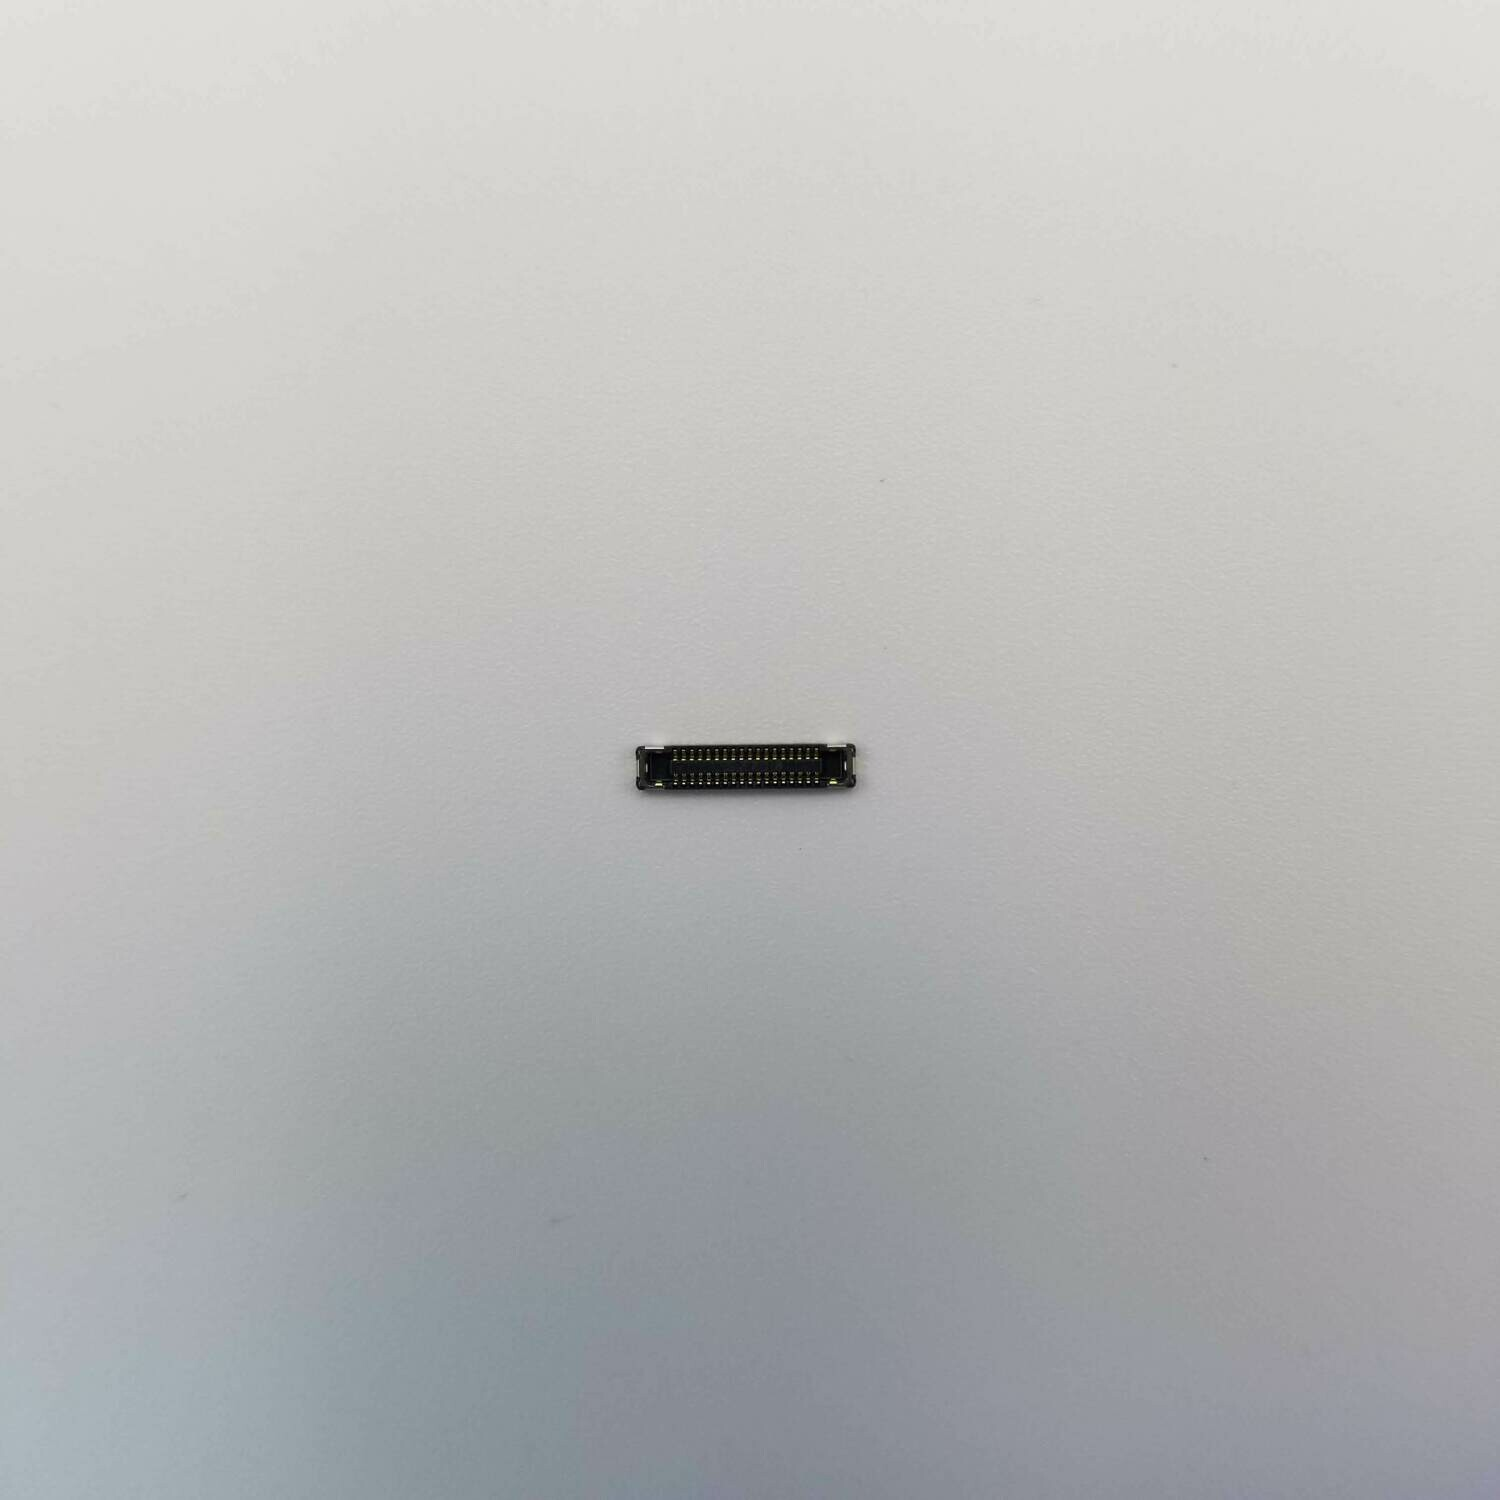 iPhone 11 LCD connector